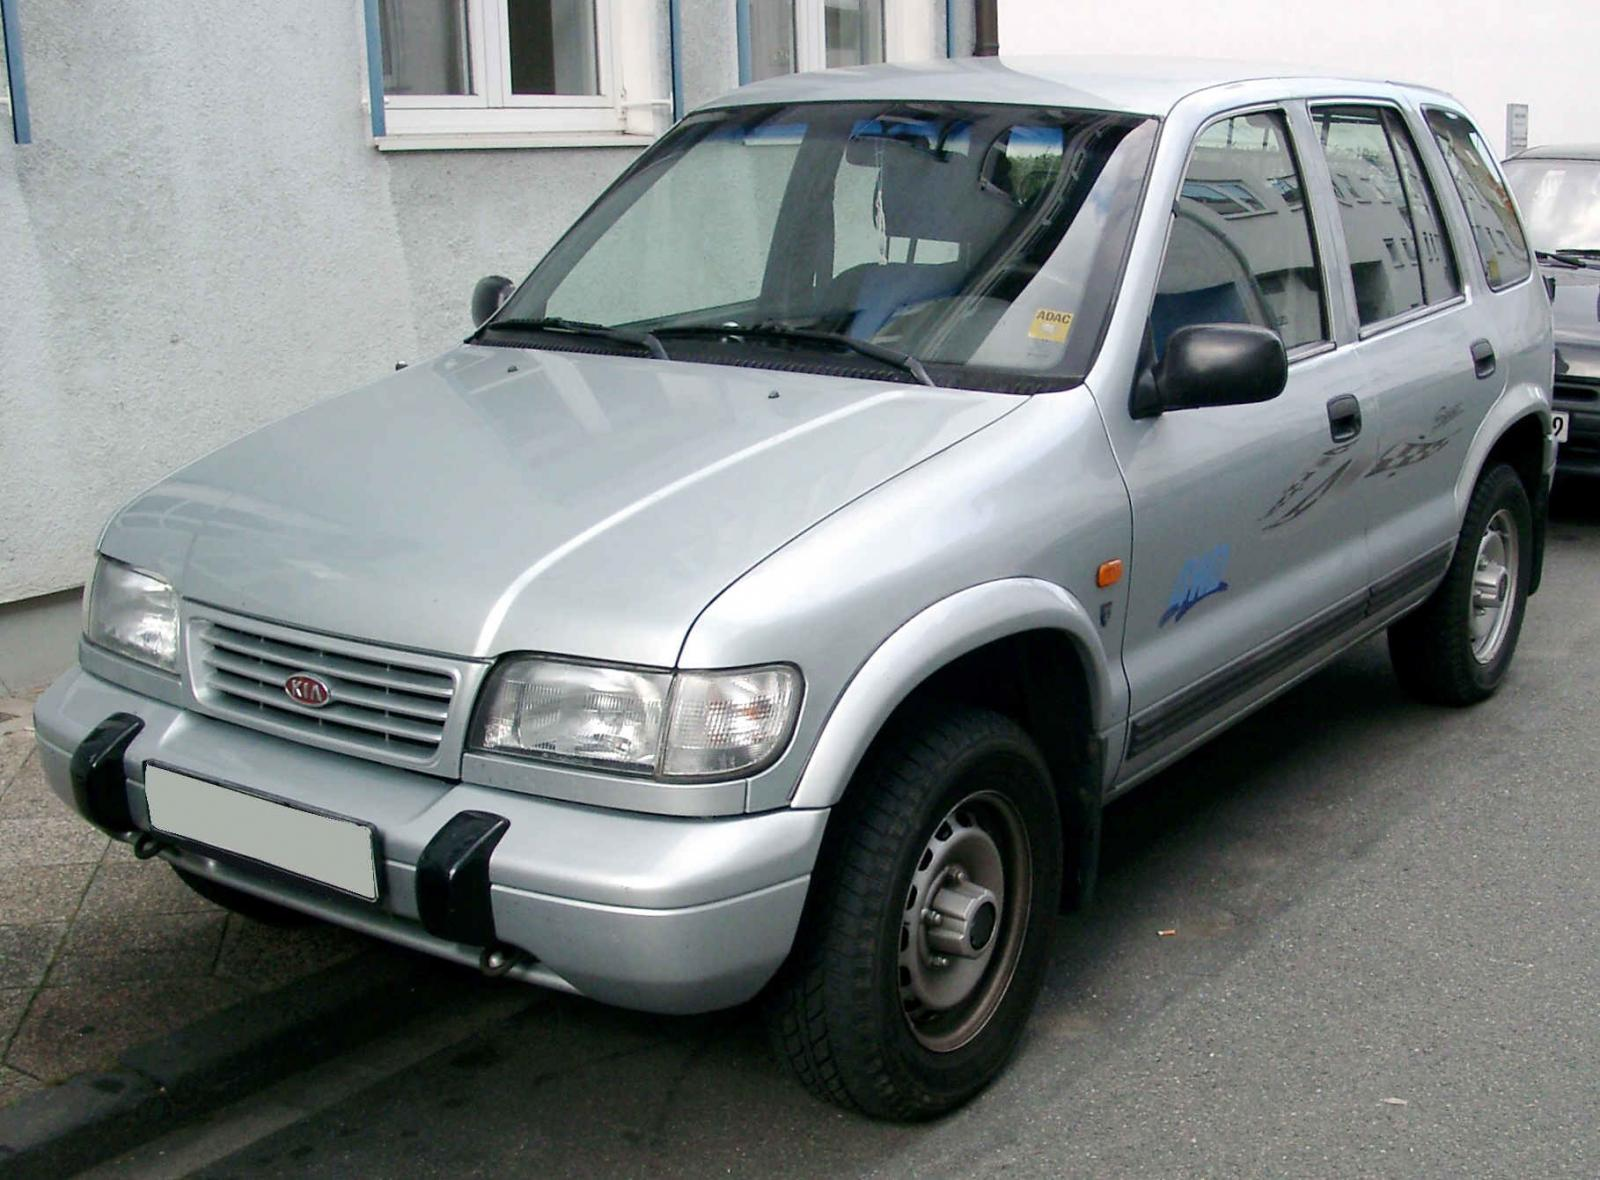 1998 Kia Sportage Information And Photos Zombiedrive 2005 Fuel Filter 800 1024 1280 1600 Origin